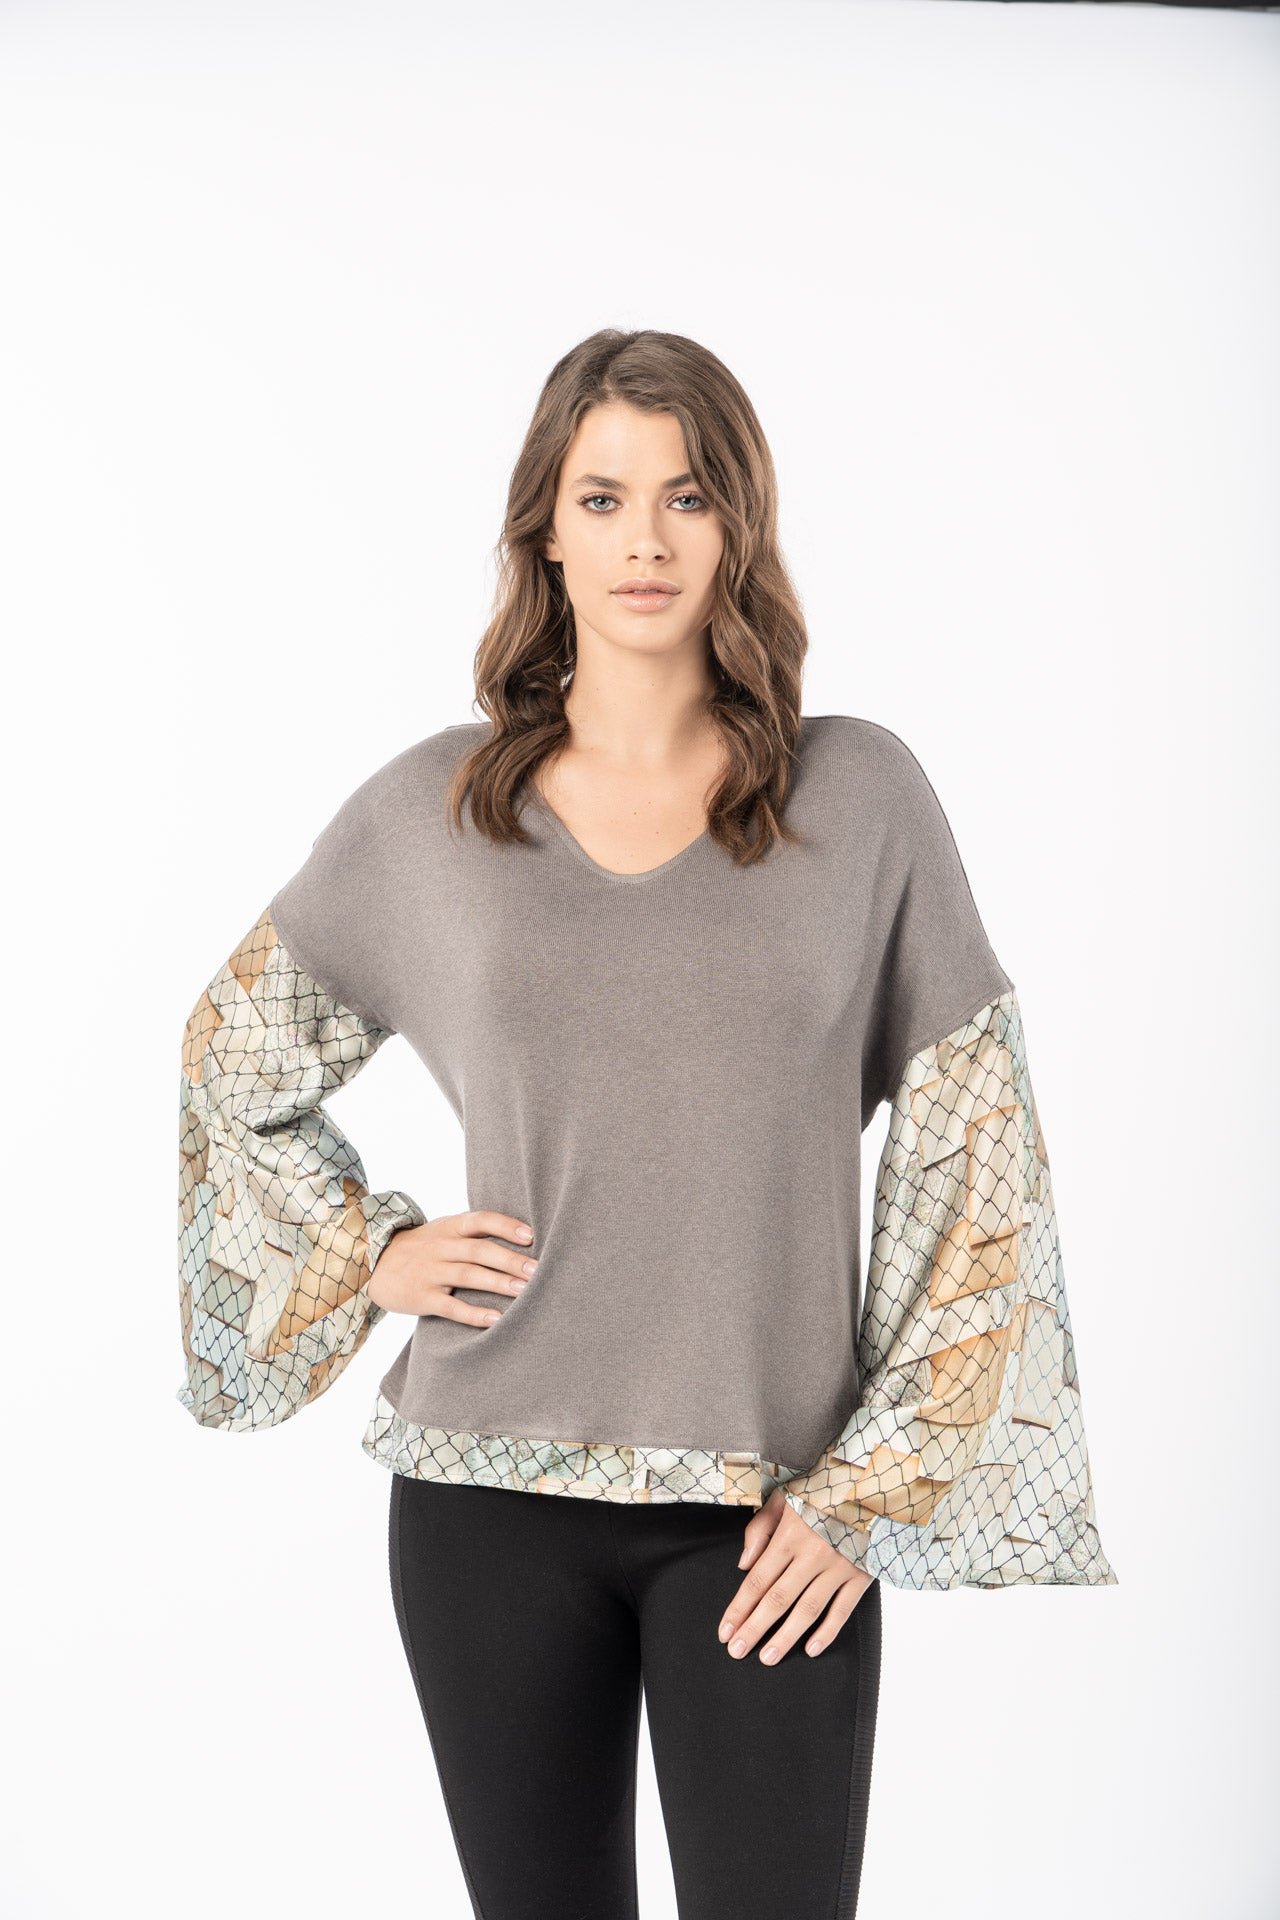 Scala Top - Fence Map Print Long Sleeve Top - artTECA